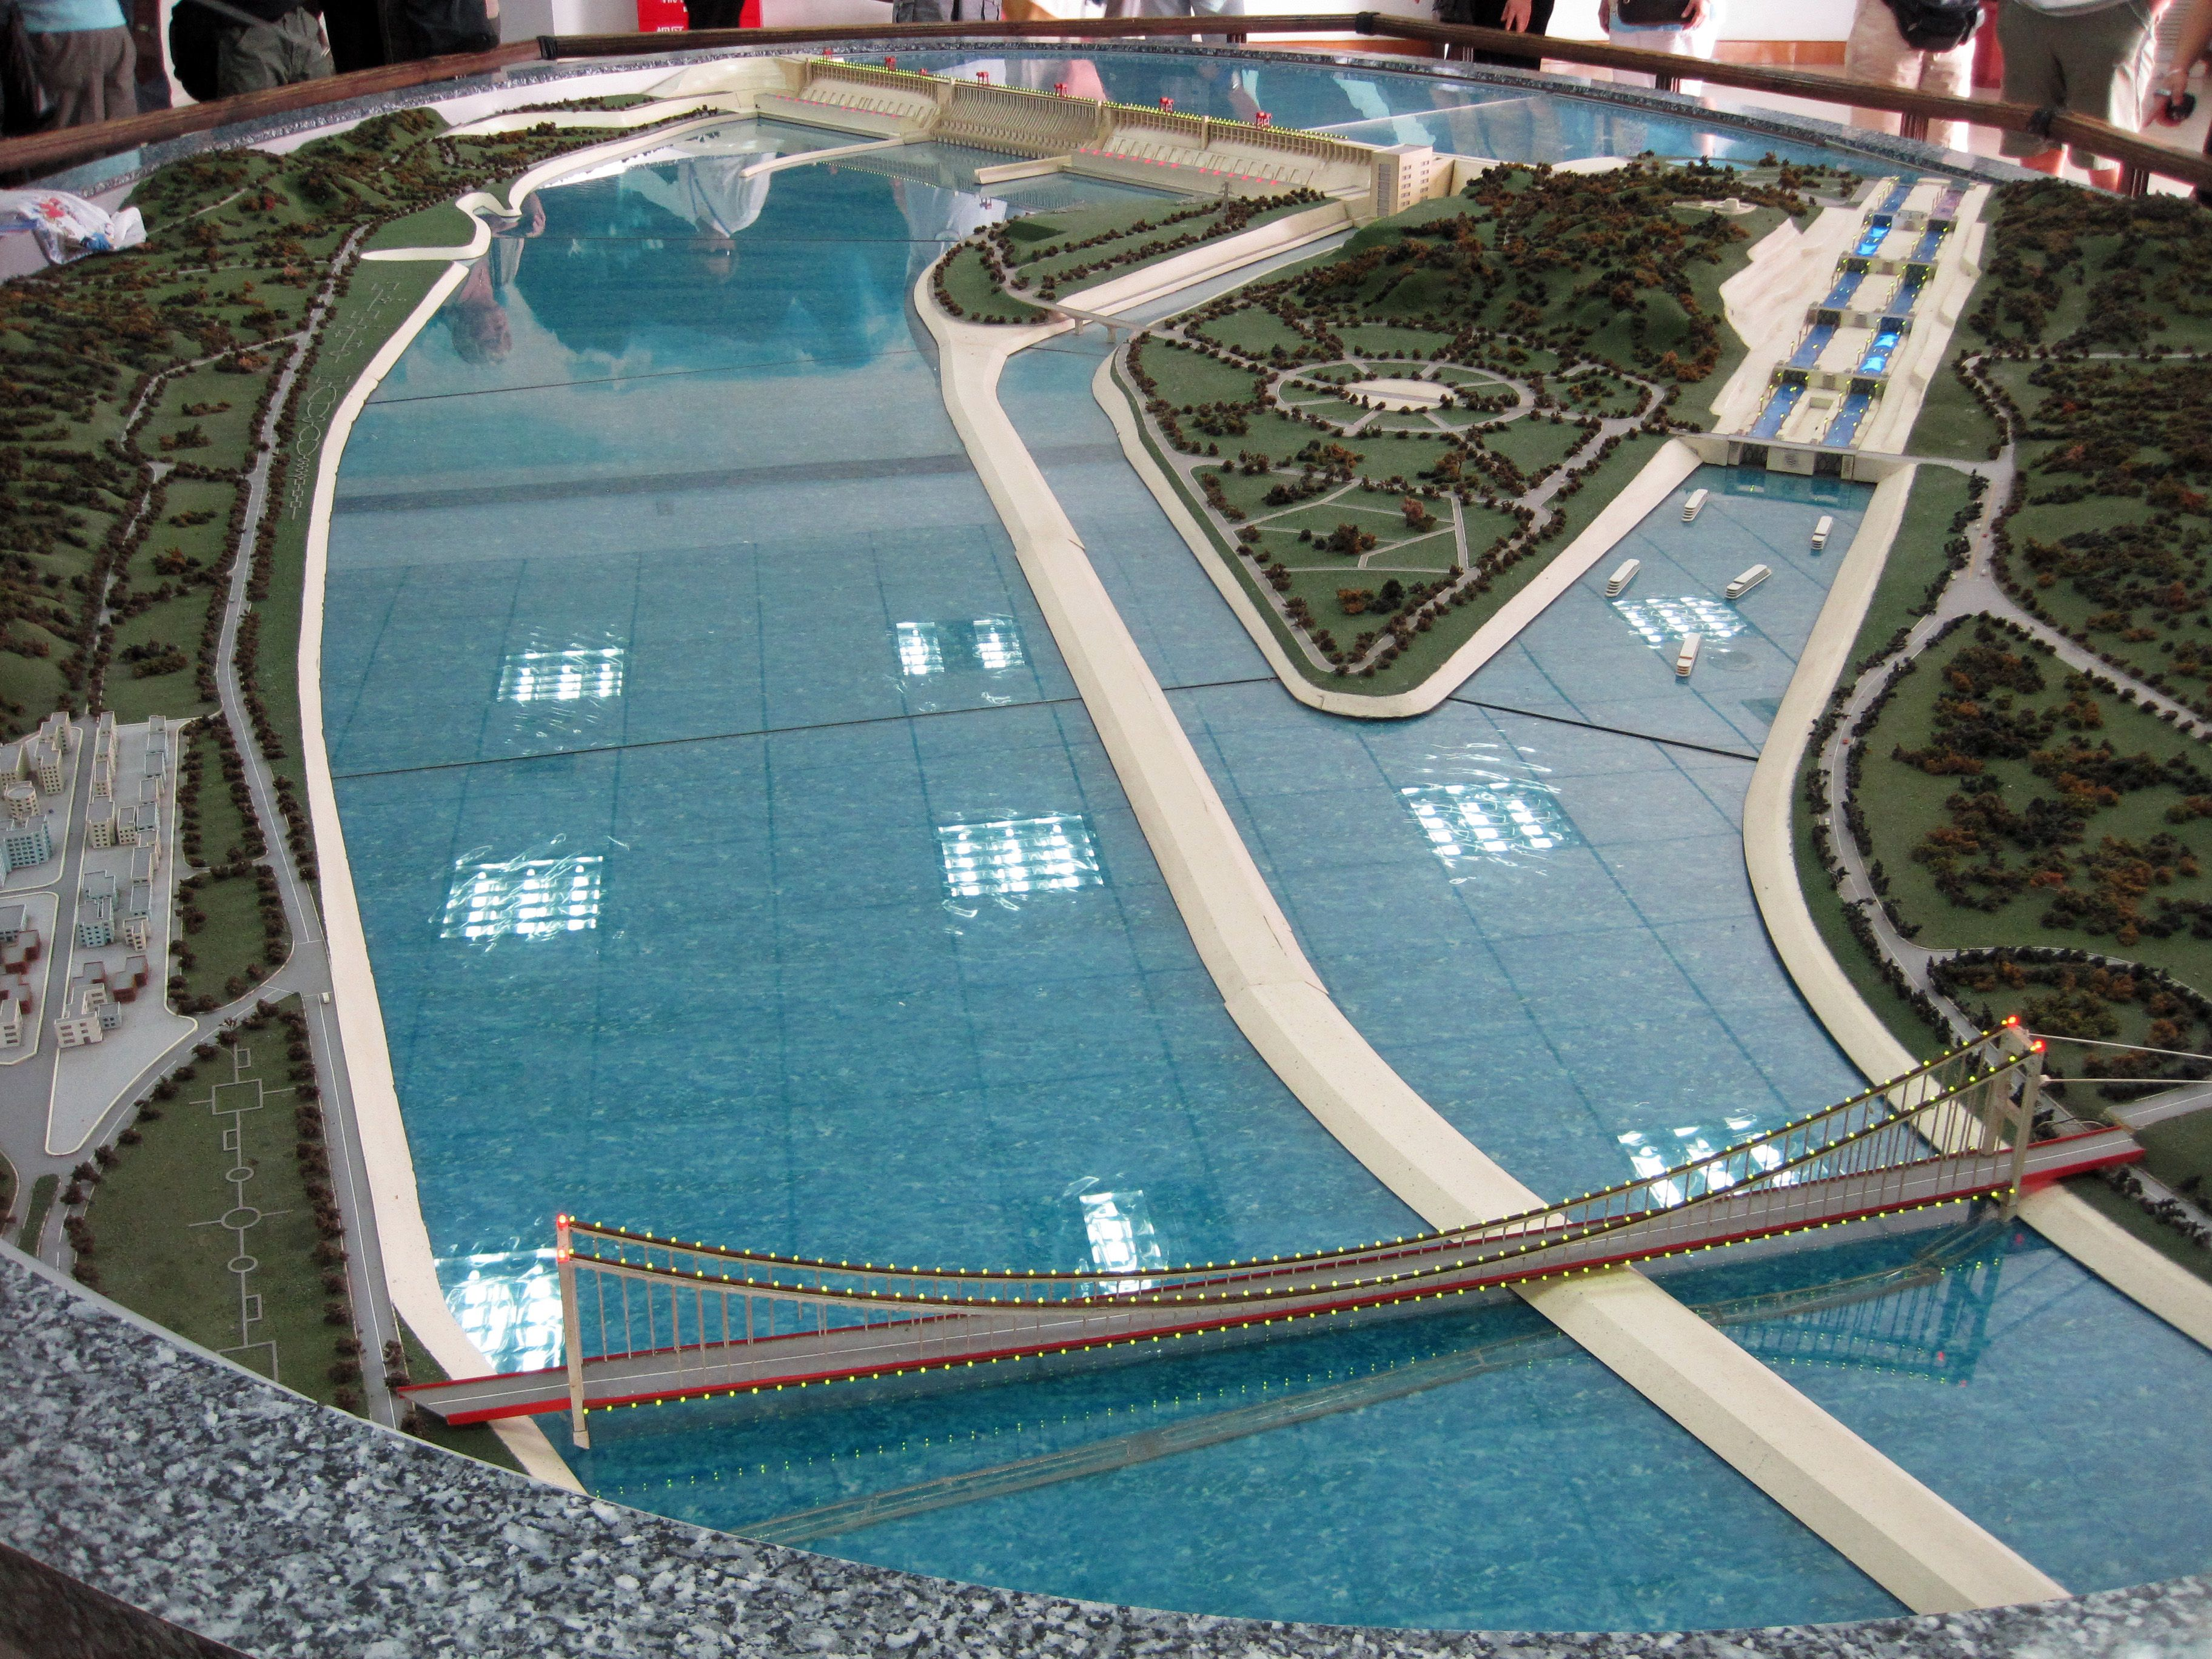 Three gorges dam project china s biggest project since the great wall - Visitor Center Models Of The Three Gorges Dam